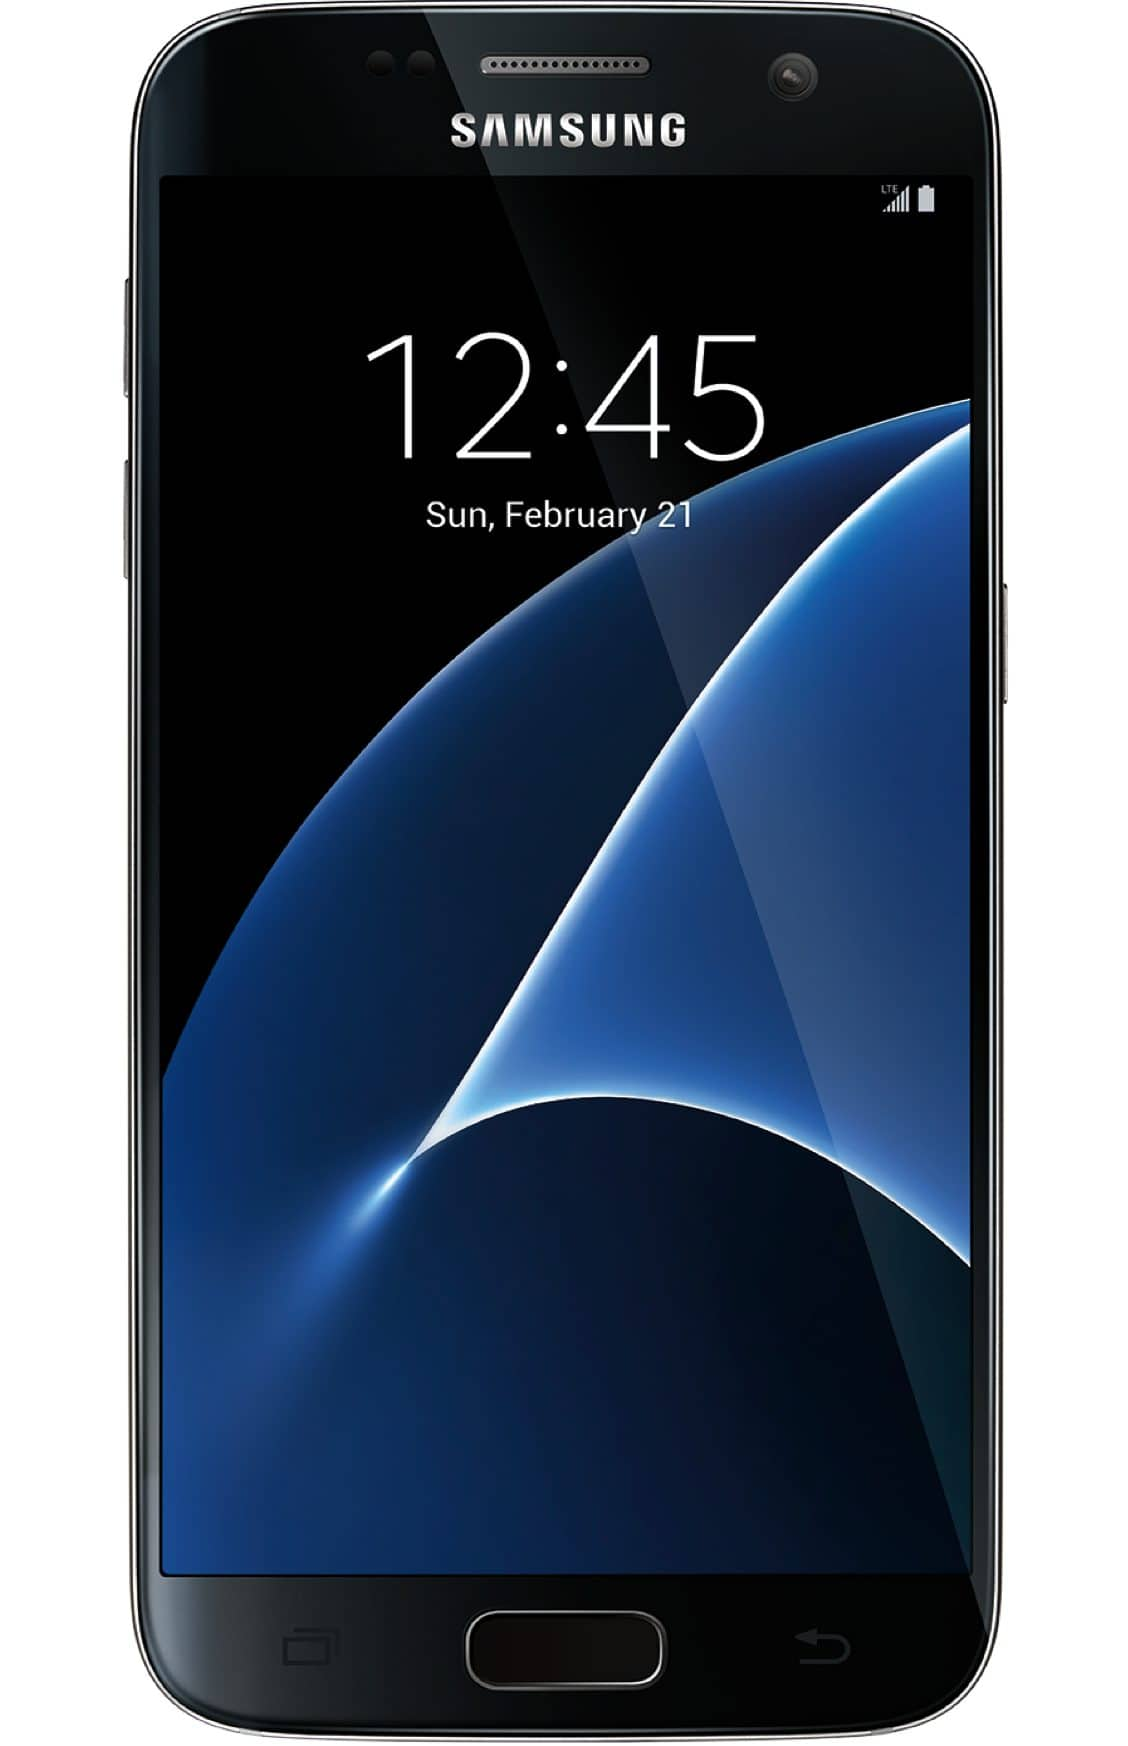 Boost Mobile Prepaid Smartphones (Pre-Owned): Samsung Galaxy S7 $99.99 or Galaxy S7 Egde $149.99 + Free Shipping @ Boost Mobile